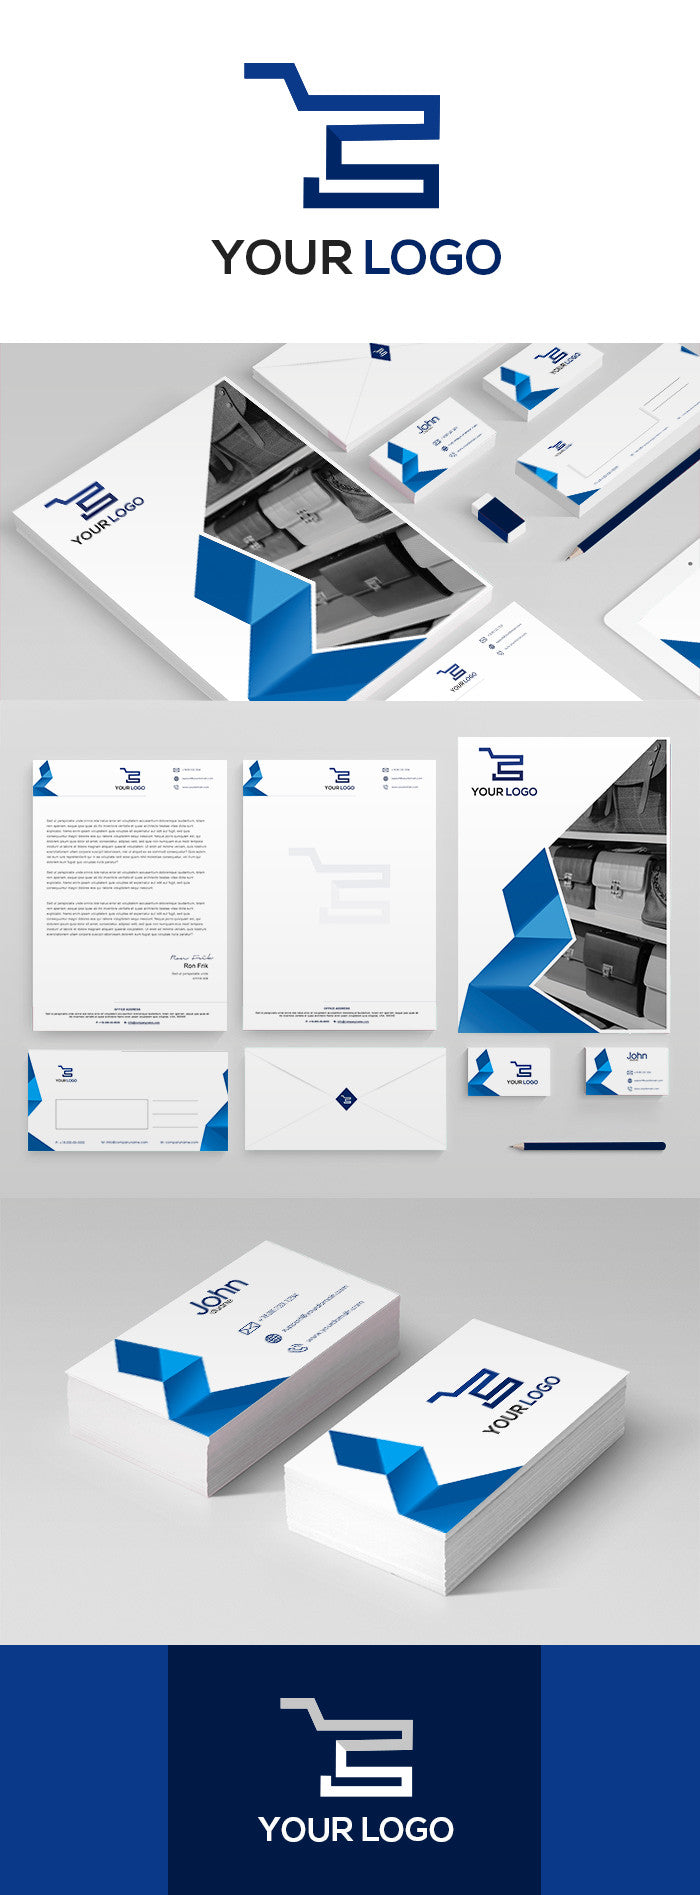 White And Blue Corporate kit for Website Marketing - GoWebBaby.Com